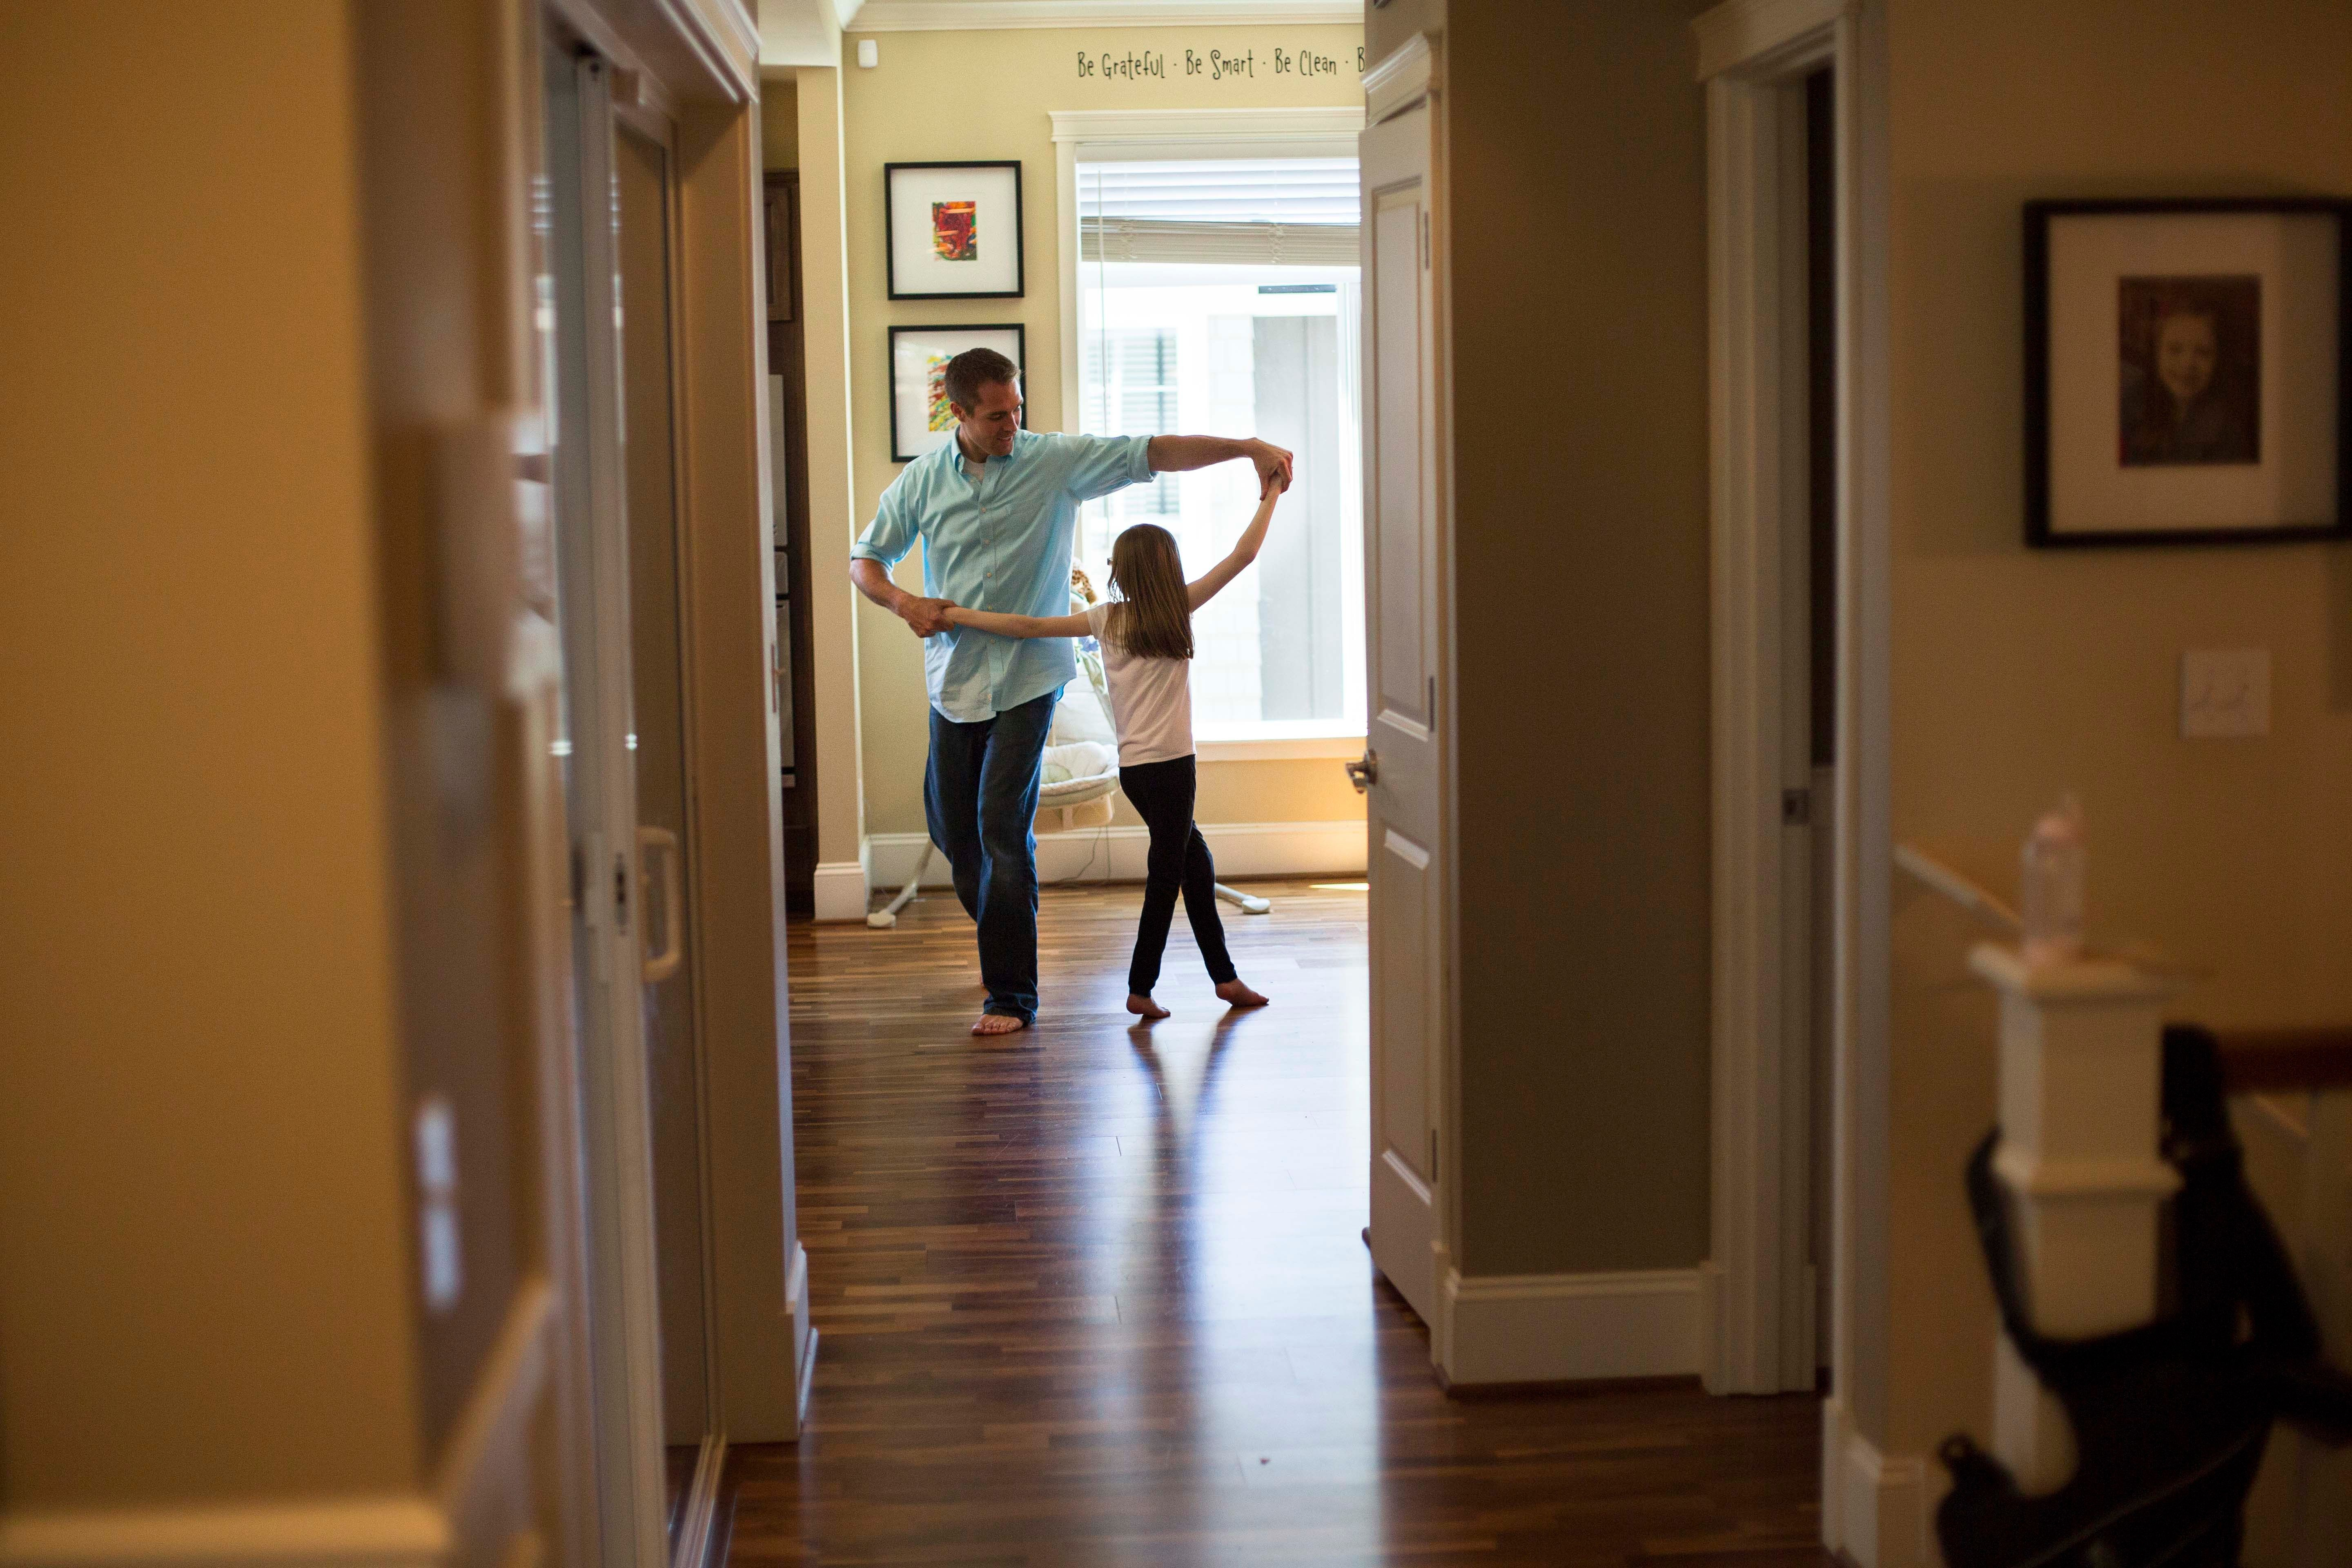 A father dances with his daughter in their home.